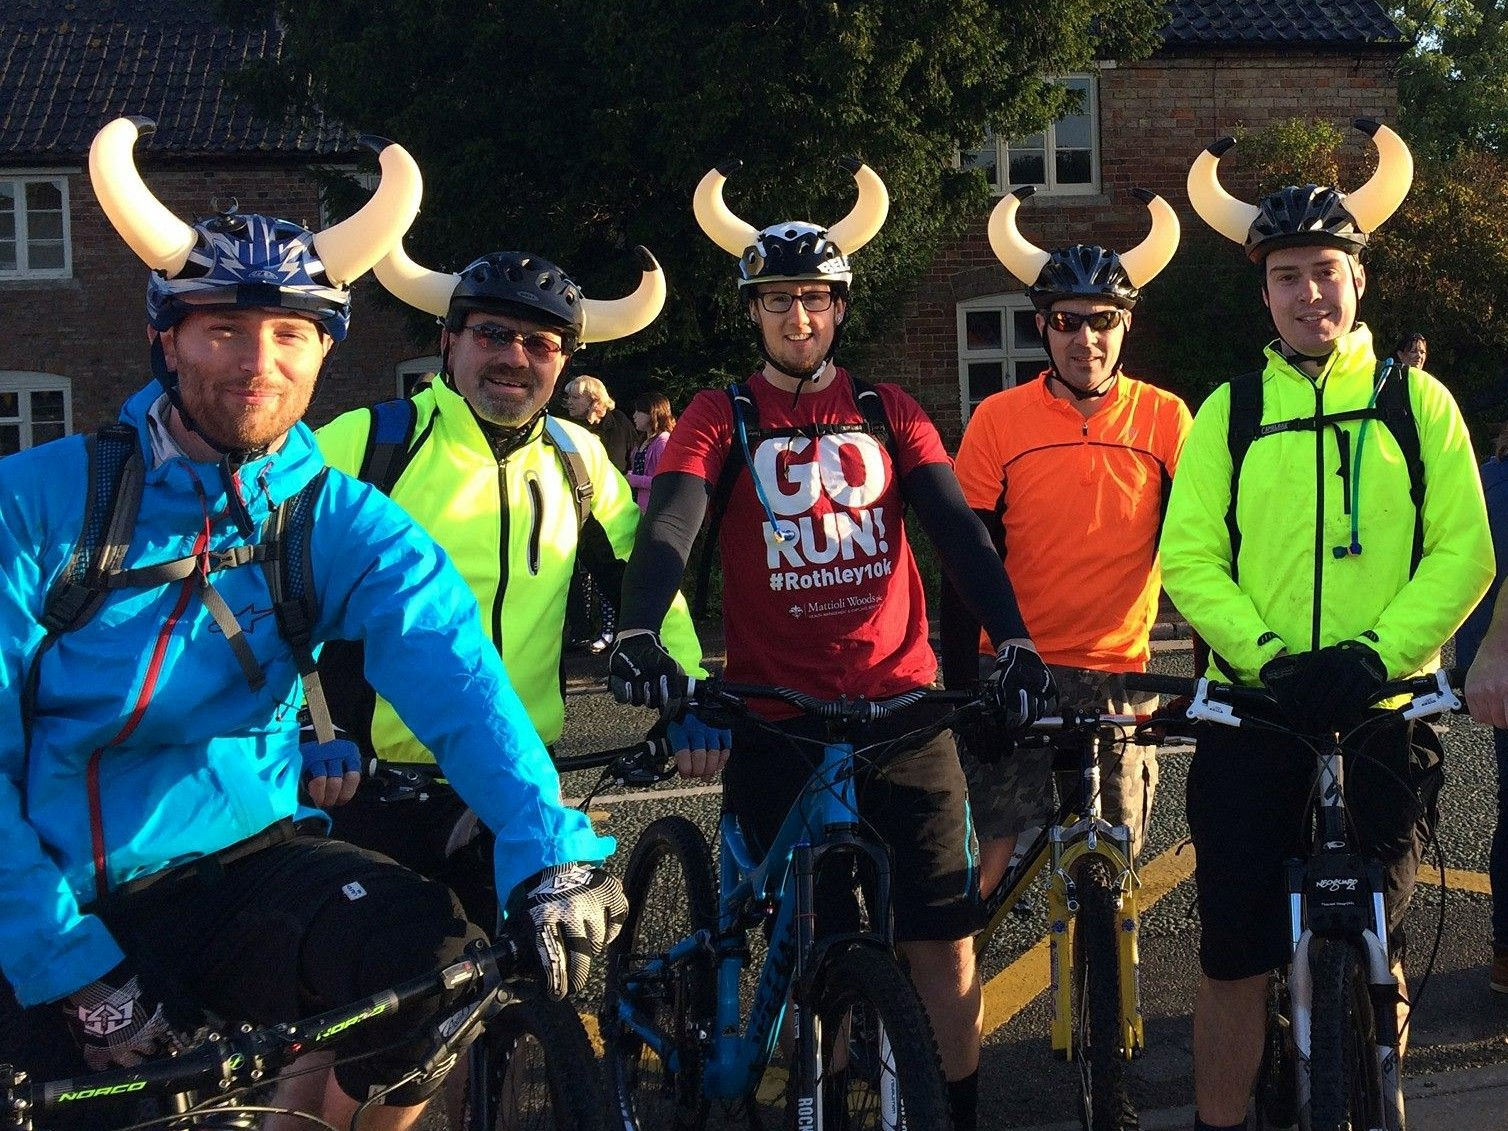 Group of cyclists ready to start